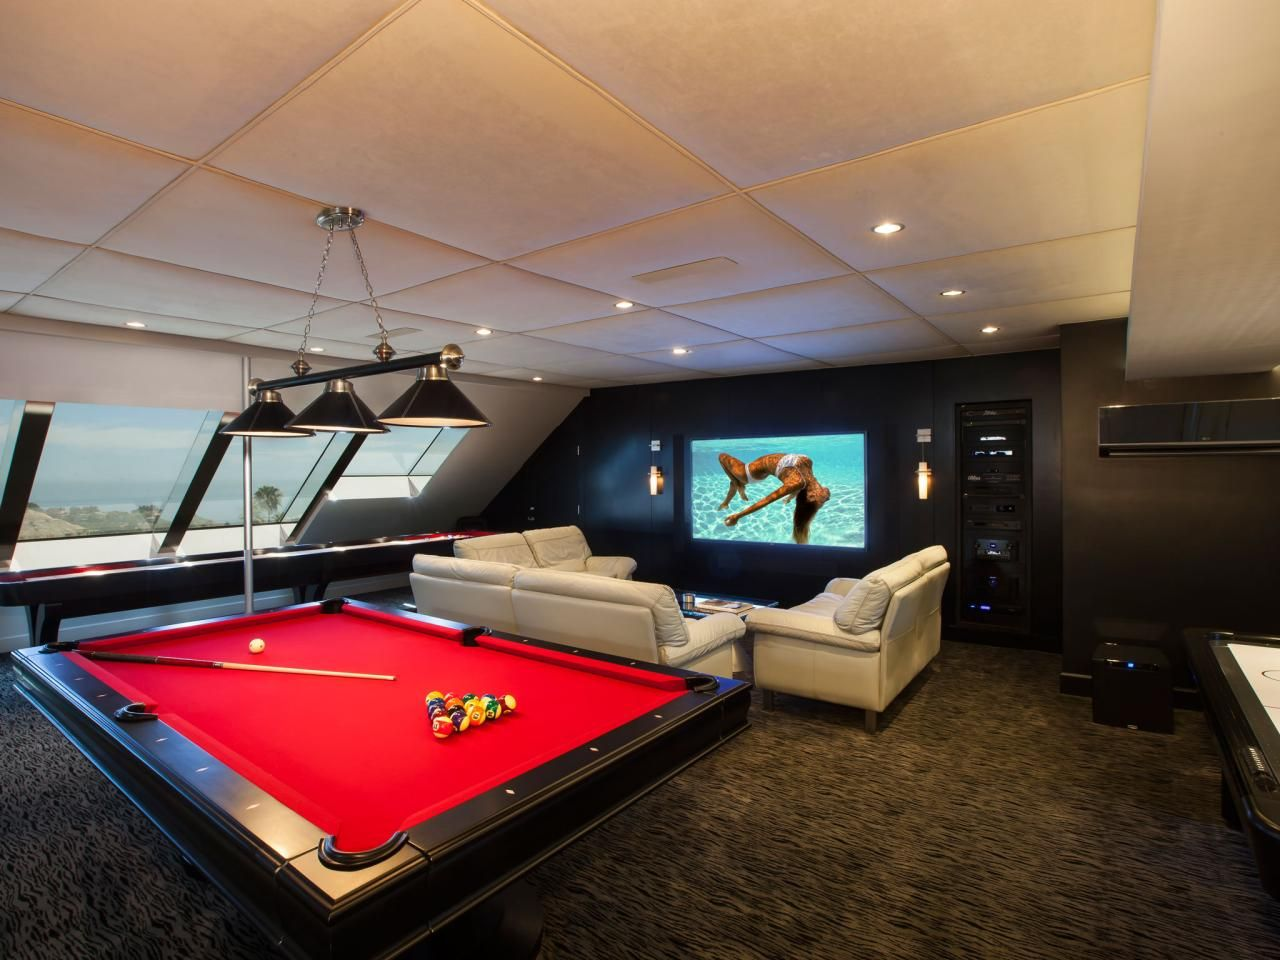 Man cave ideas fresh new ideas for man caves decorating and design ideas for interior rooms hgtv